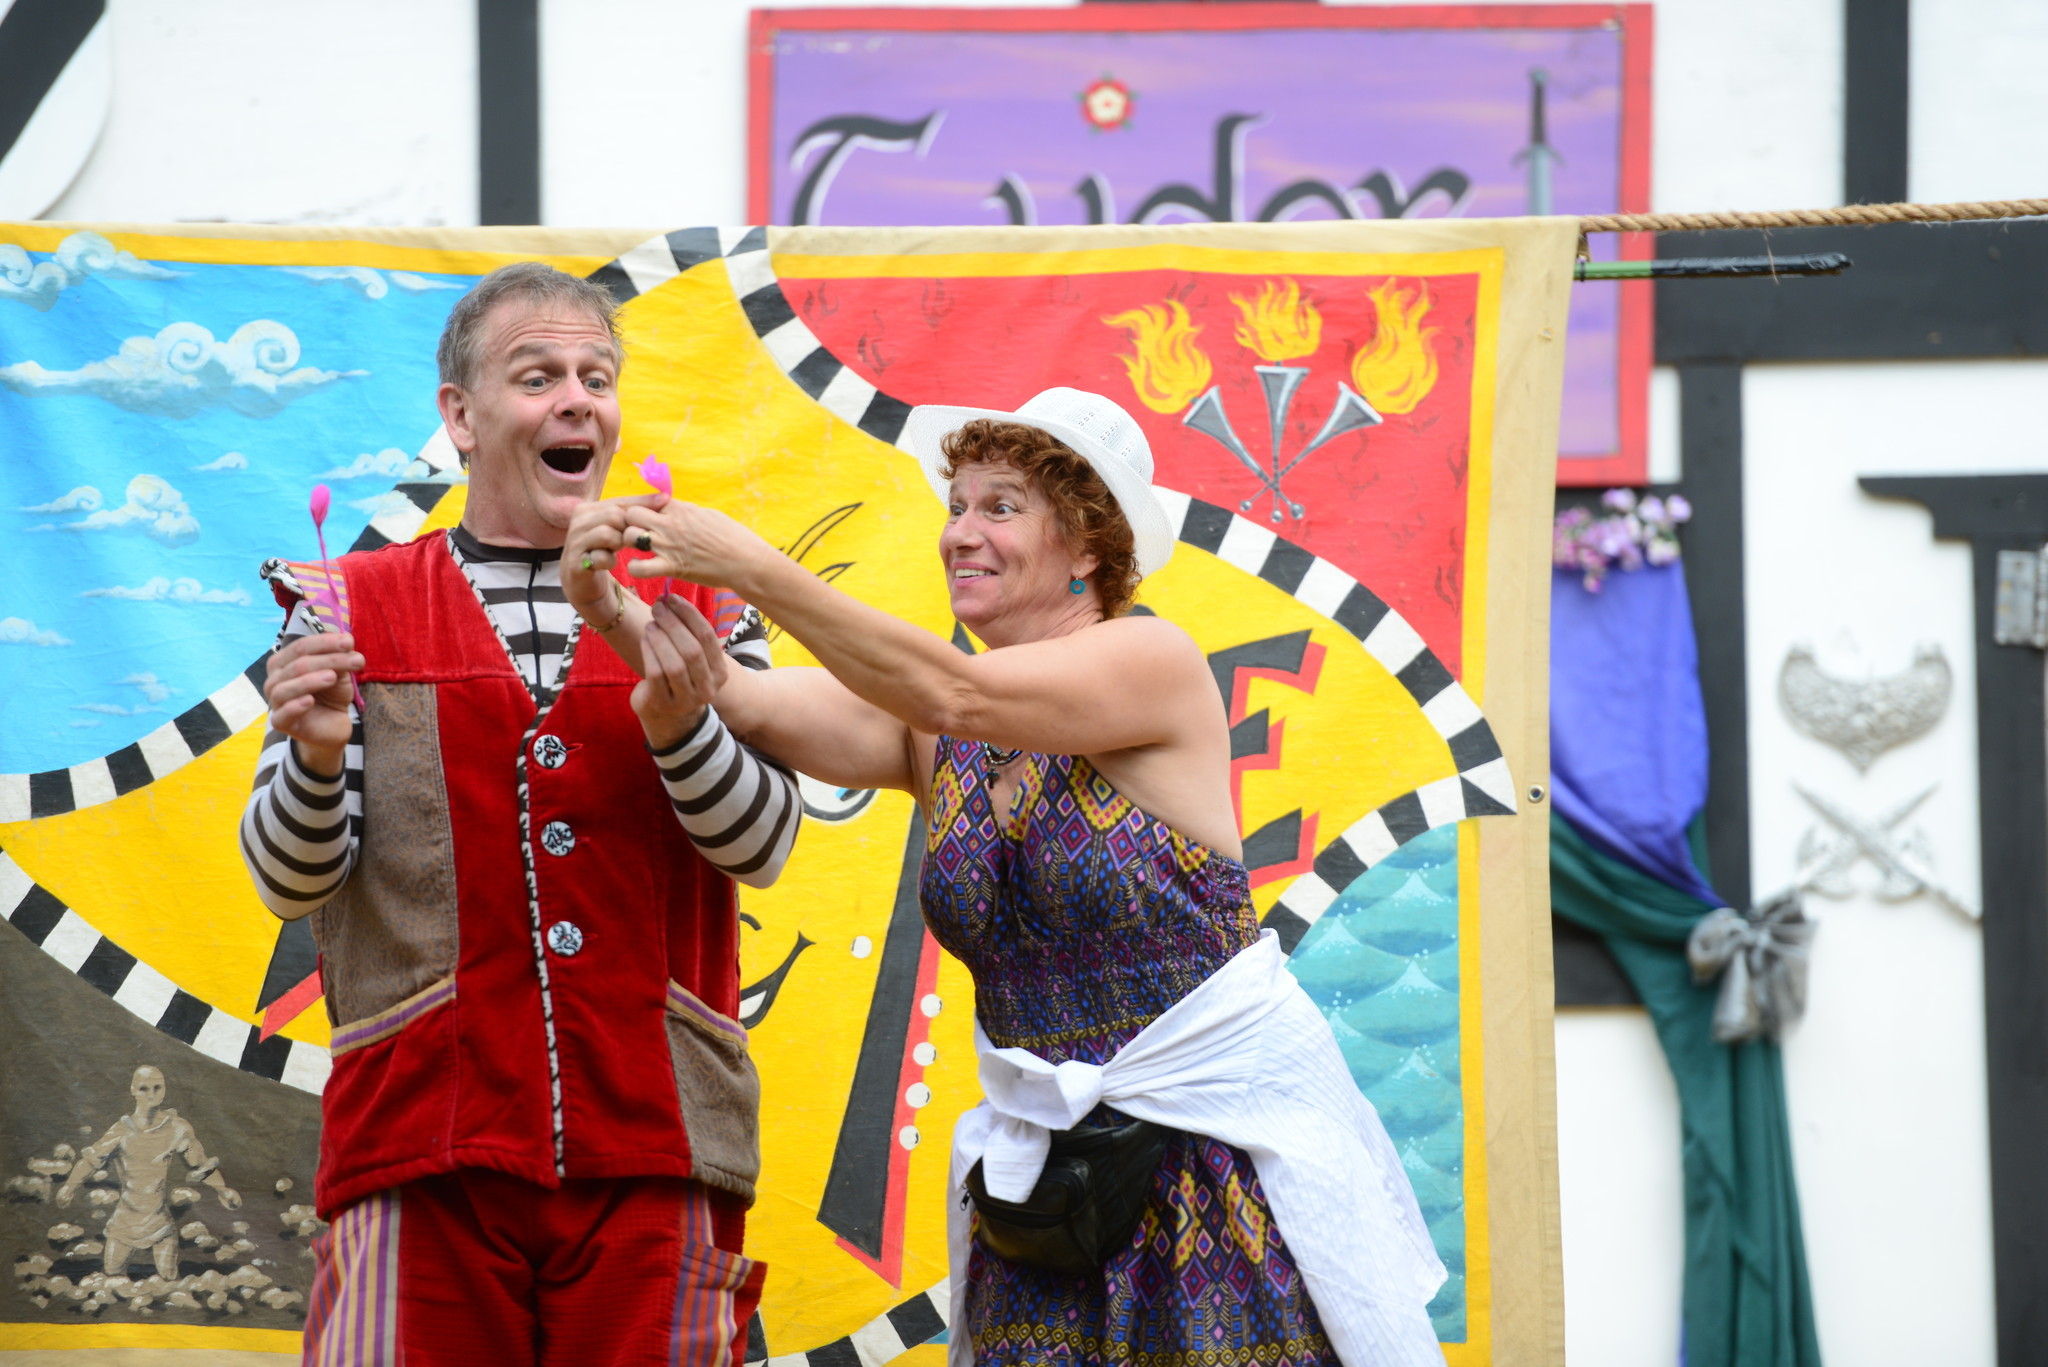 Renaissance Festival photos - Moonie the clown